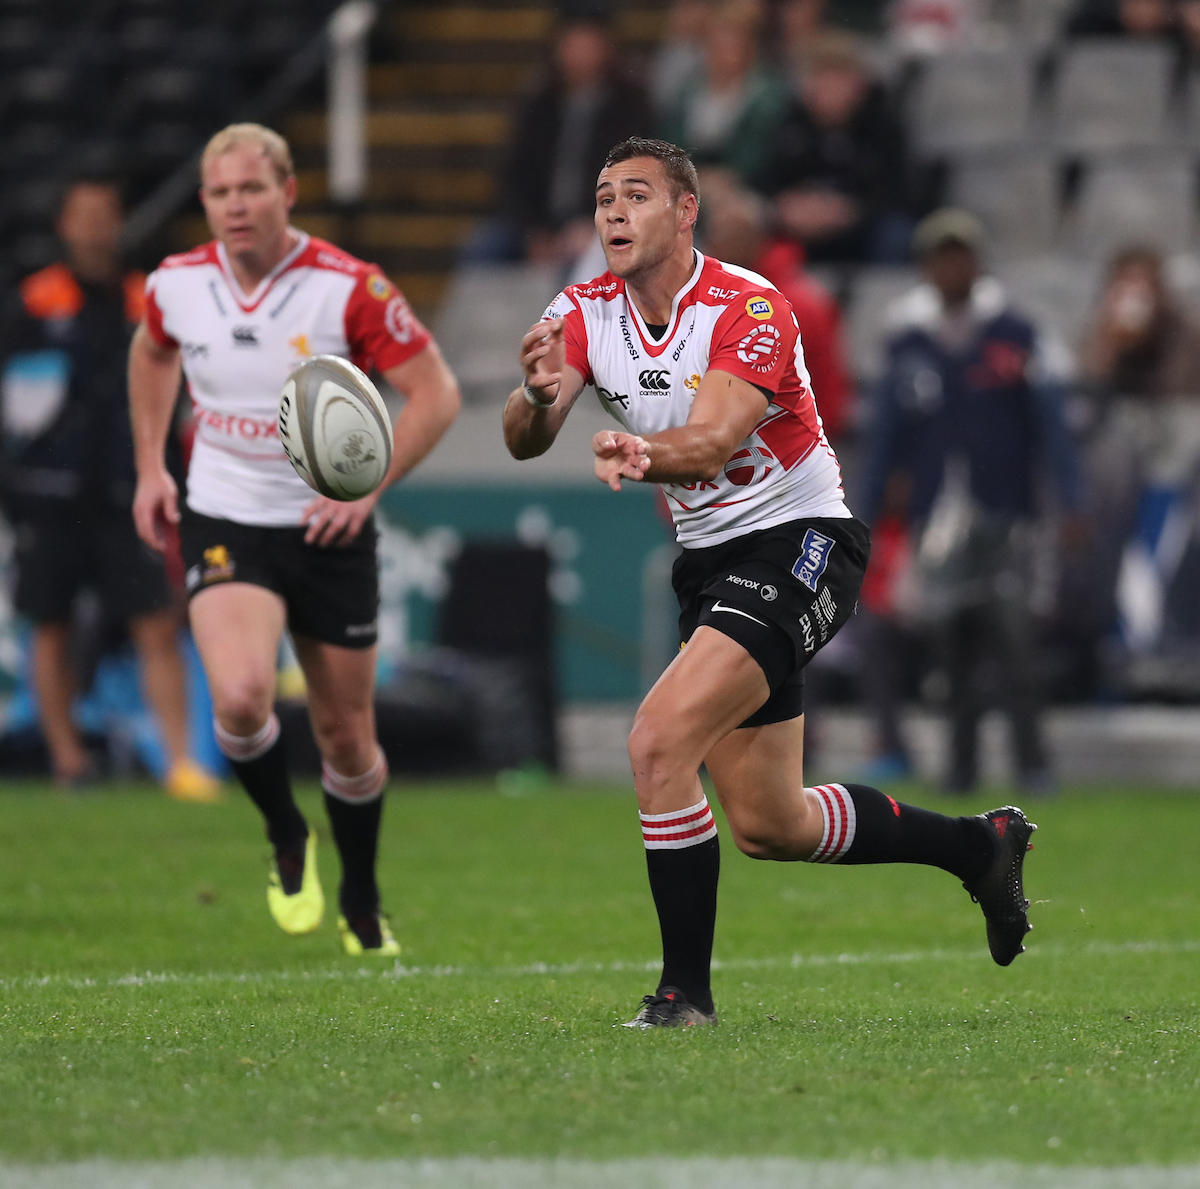 Shaun Reynolds of the Xerox Golden Lions during the Currie Cup